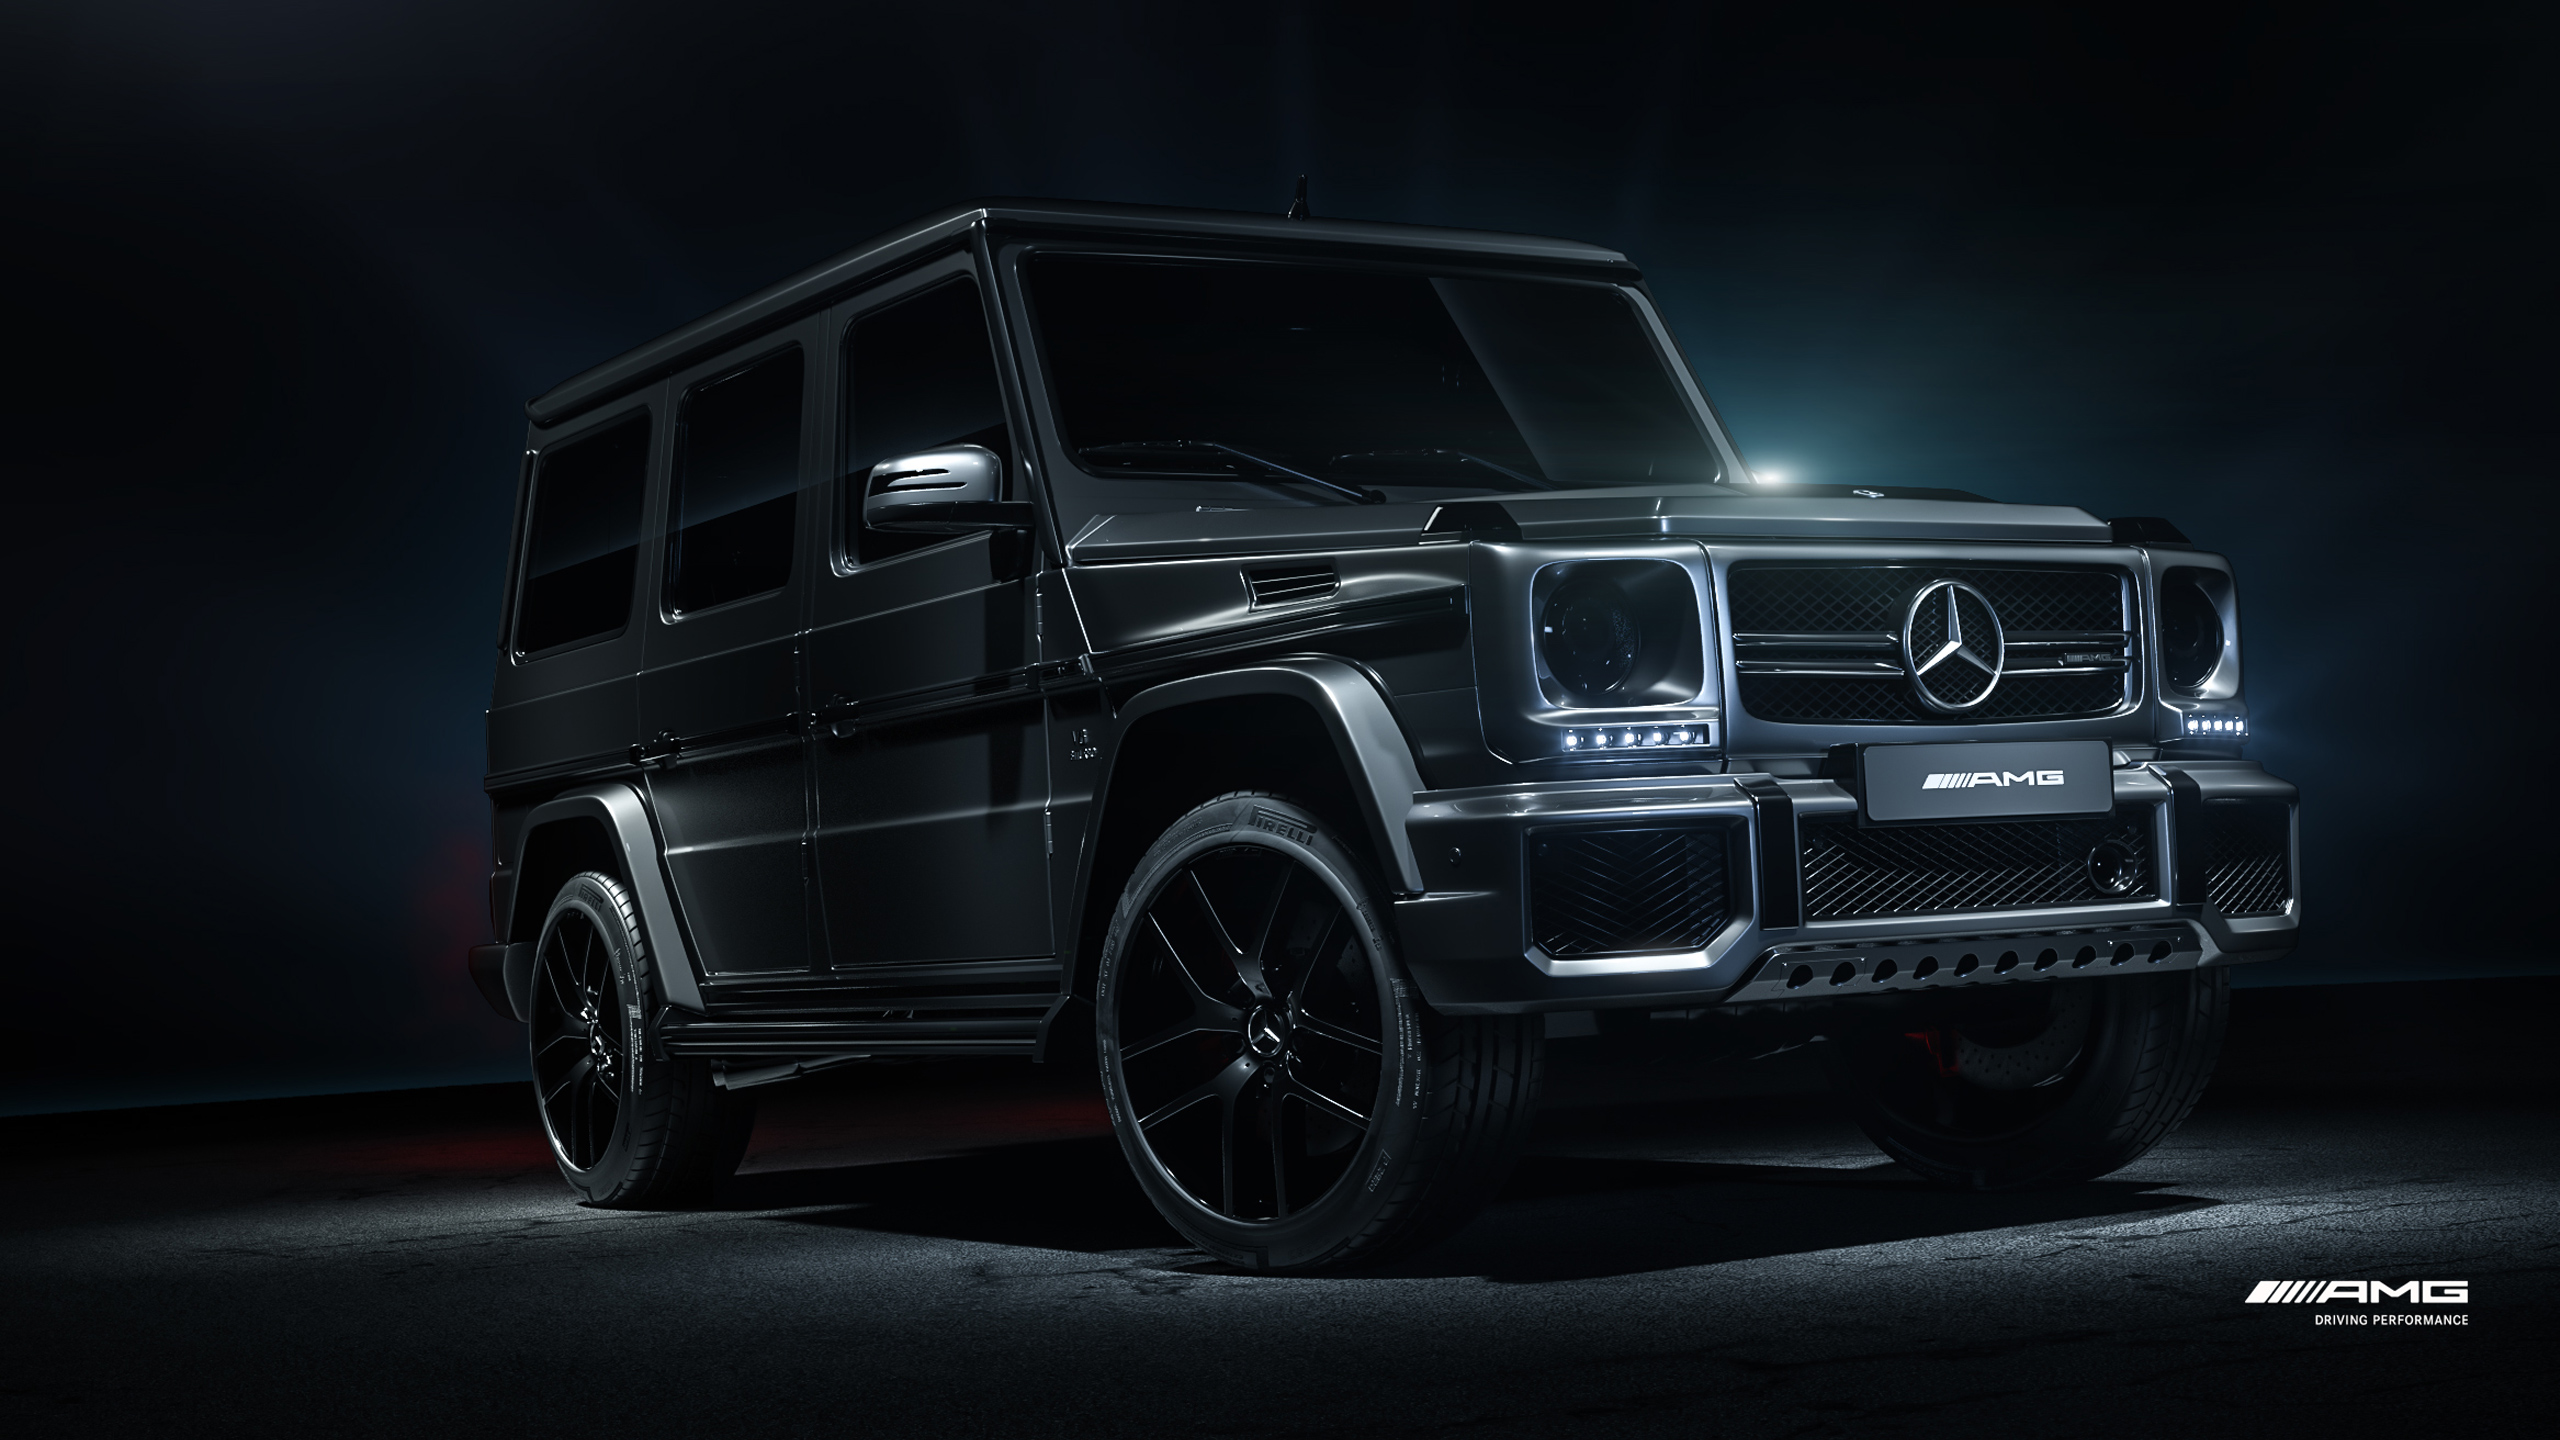 mercedes benz g 63 amg wallpaper | hd car wallpapers | id #8448